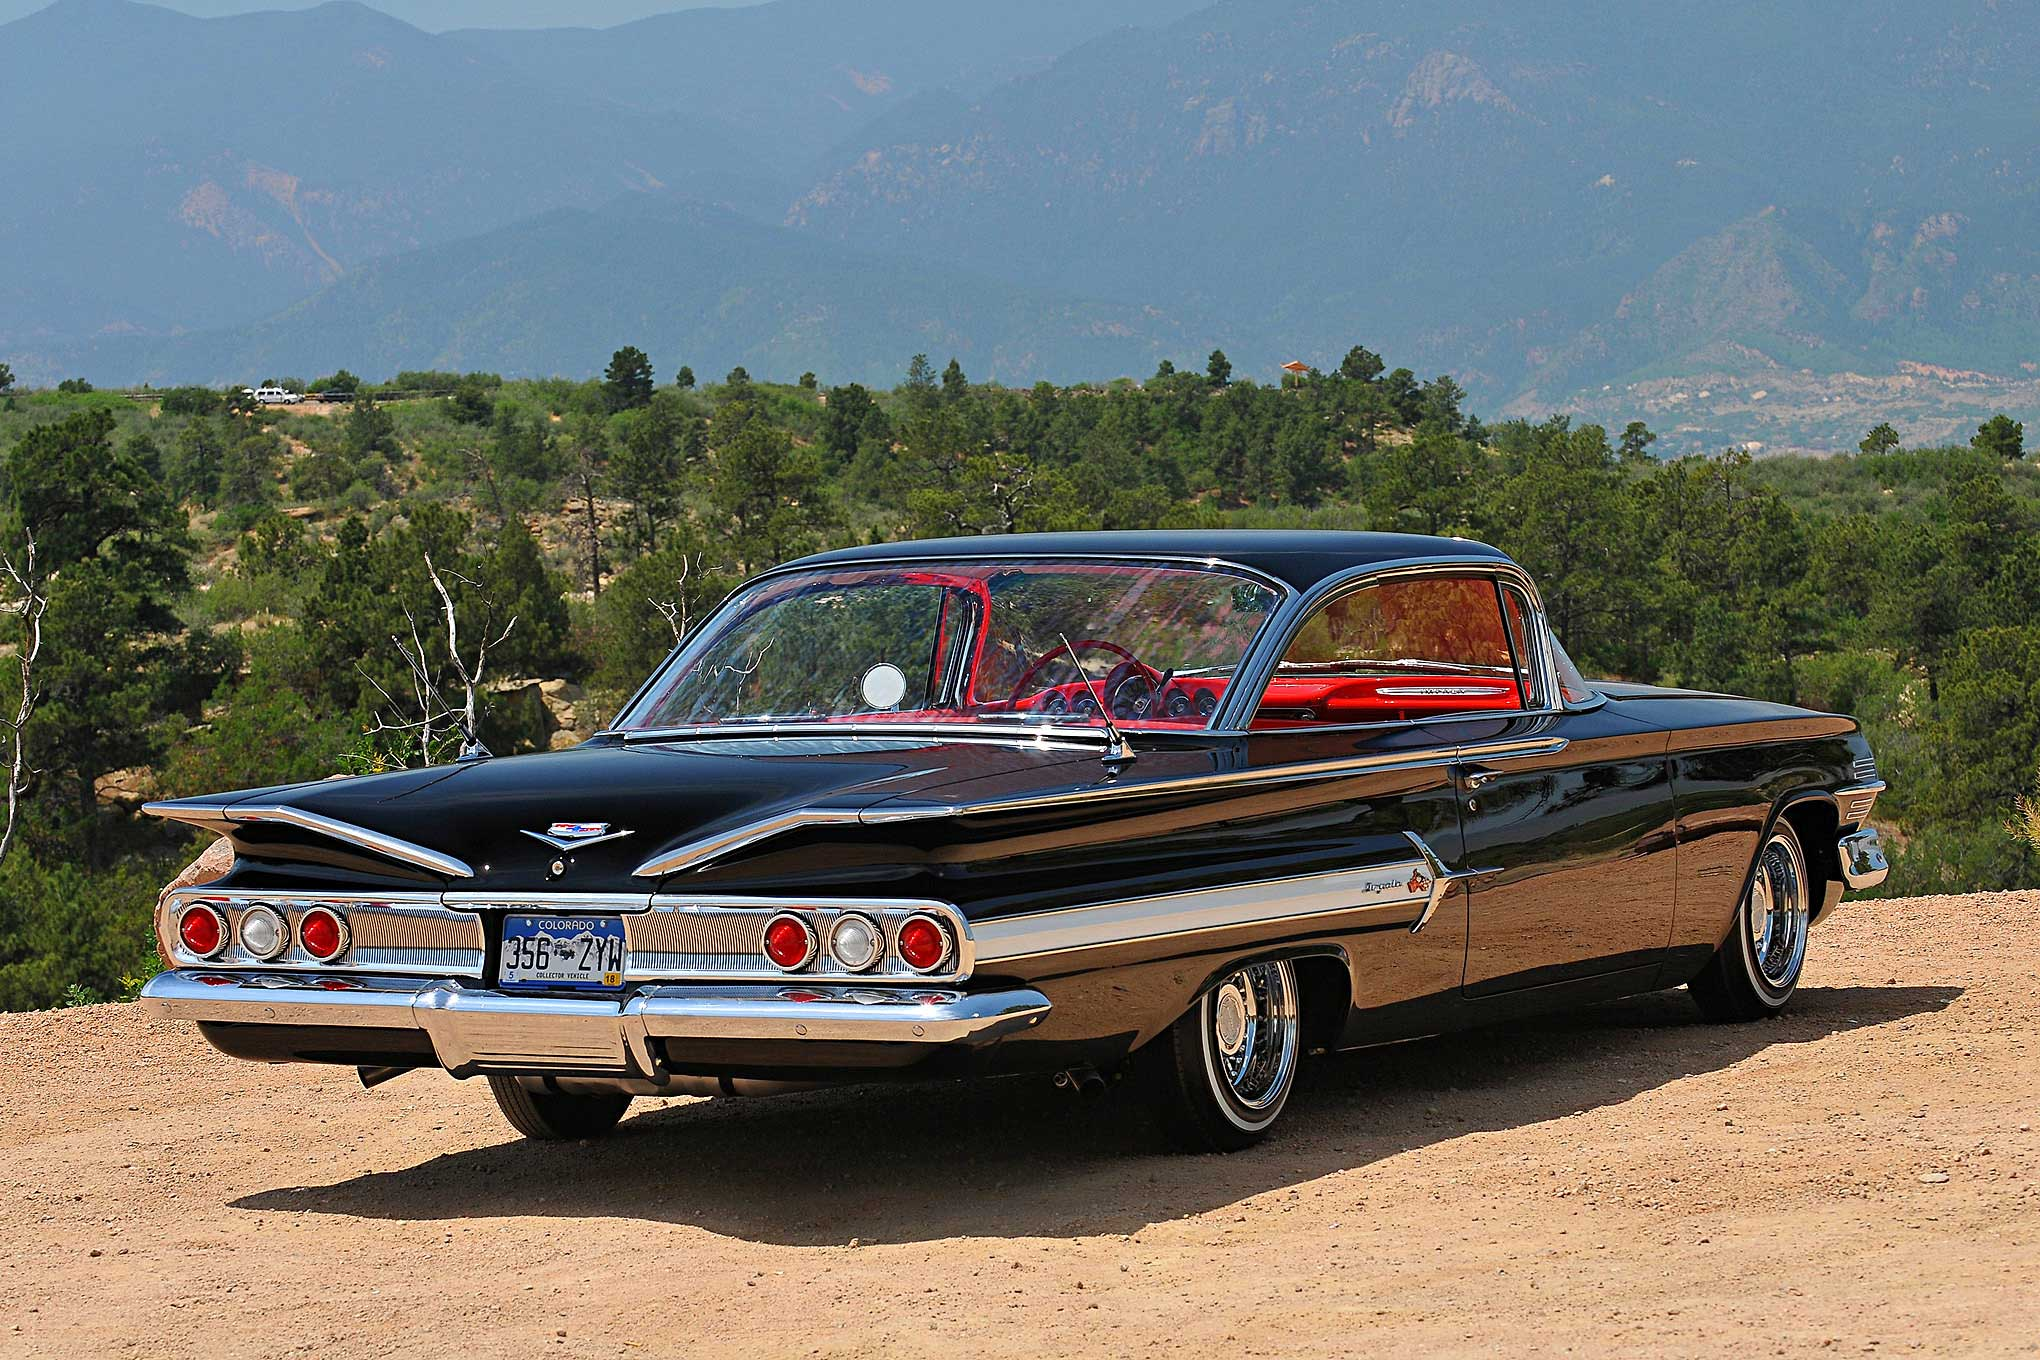 1960 Chevy Impala Rear View